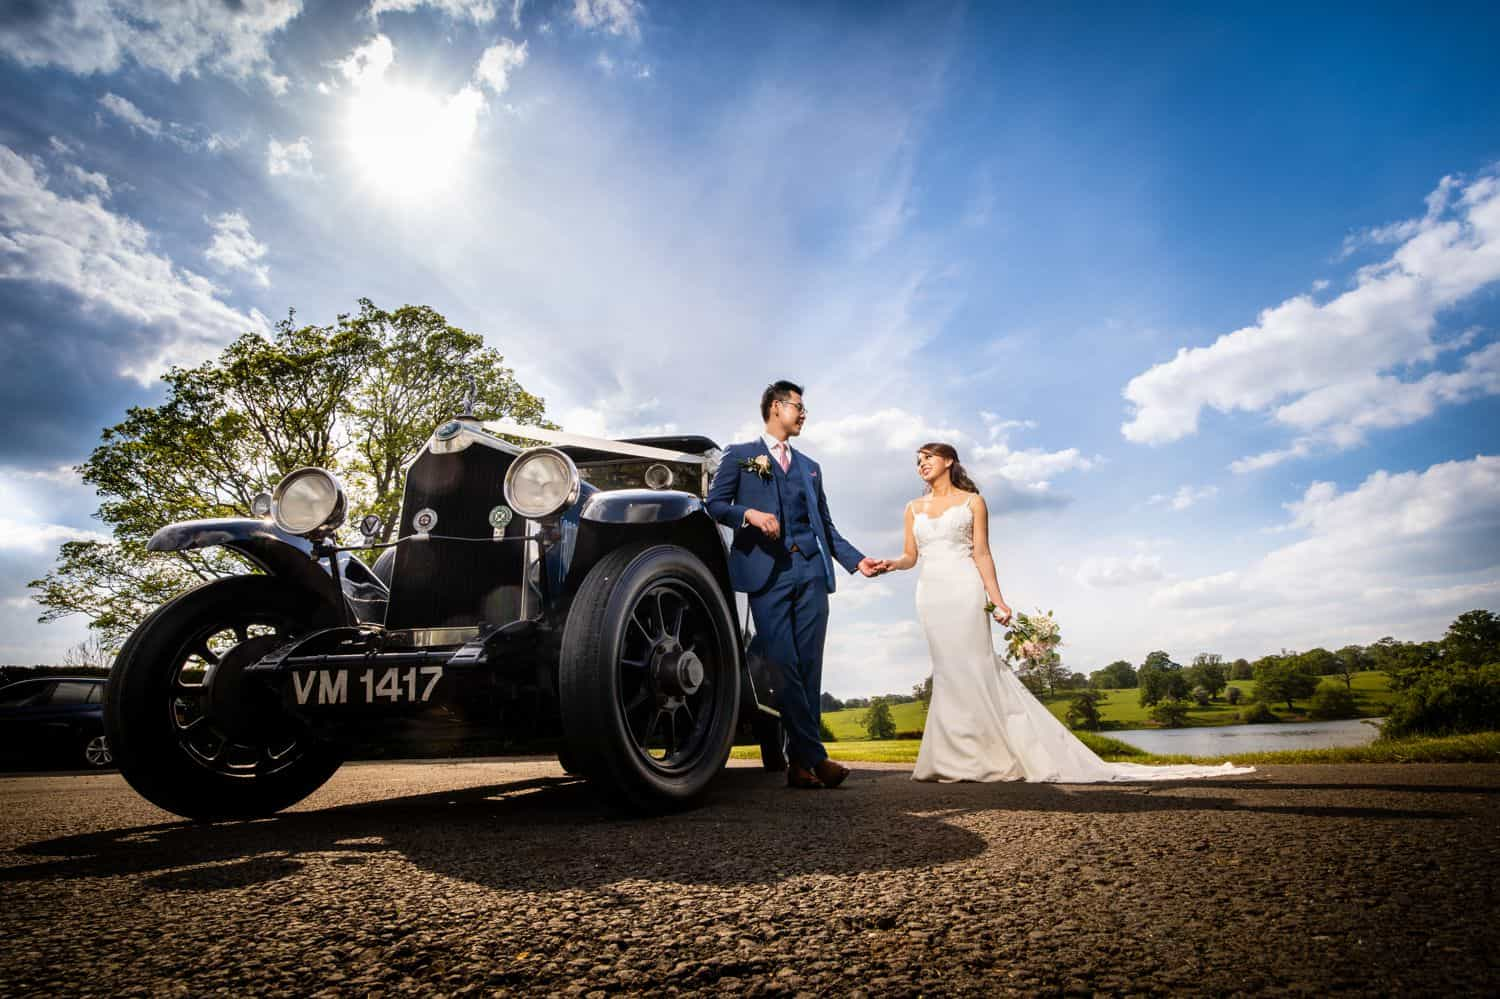 A bride and groom stand outside their getaway car on a bright sunny wedding day